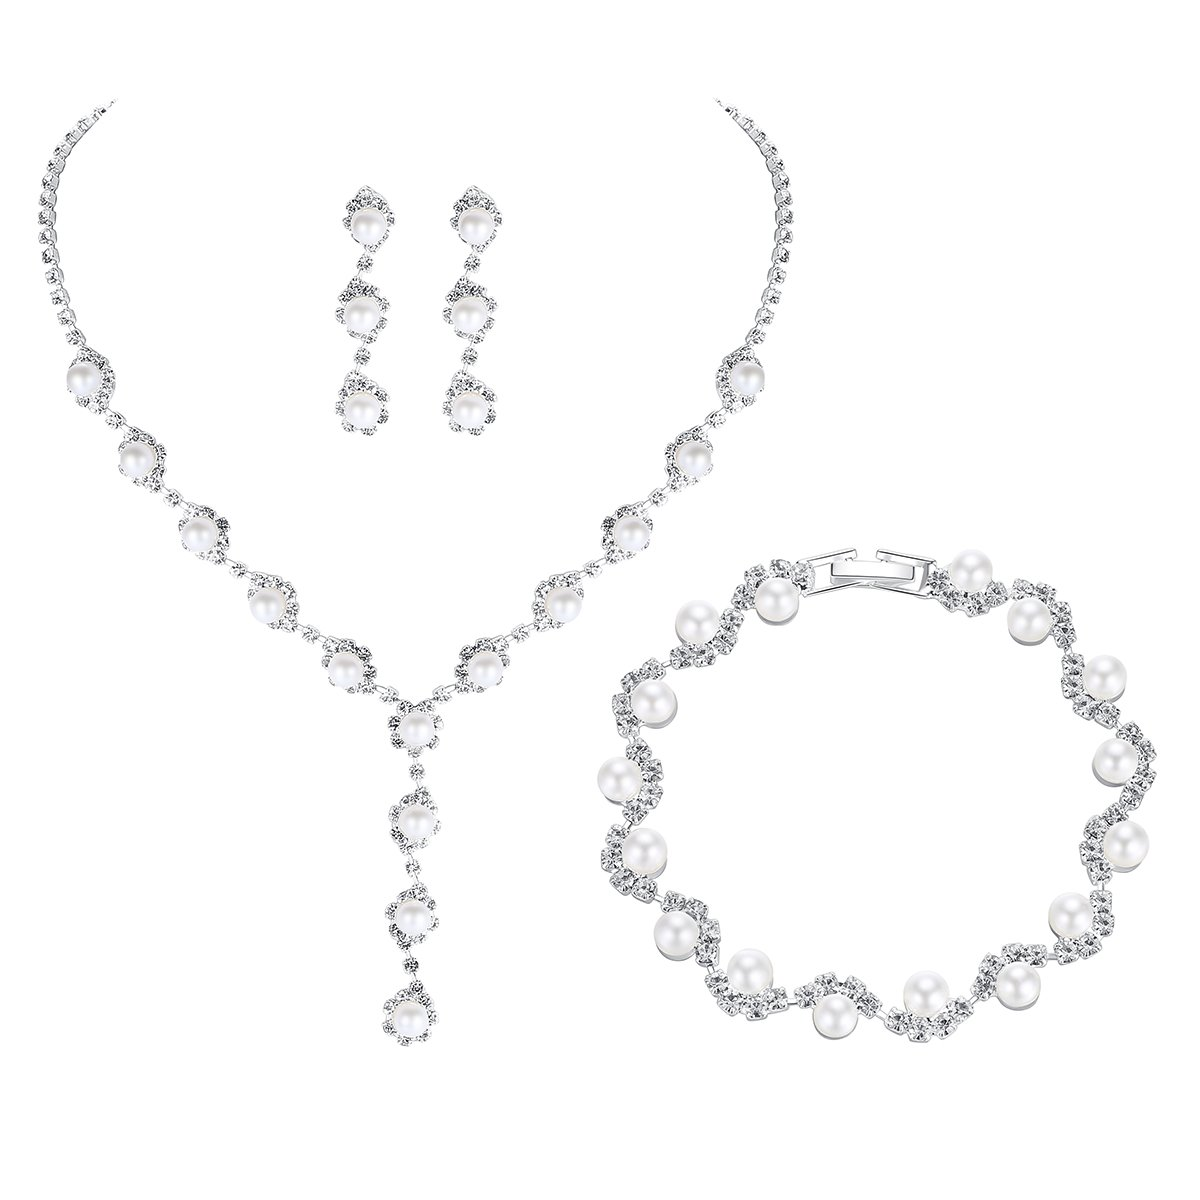 mecresh Wedding Bridal Pearl& Crystal Jewelery sets for Women (1 Set Earrings,1 PCS Necklace, 1PCS Bracelet)